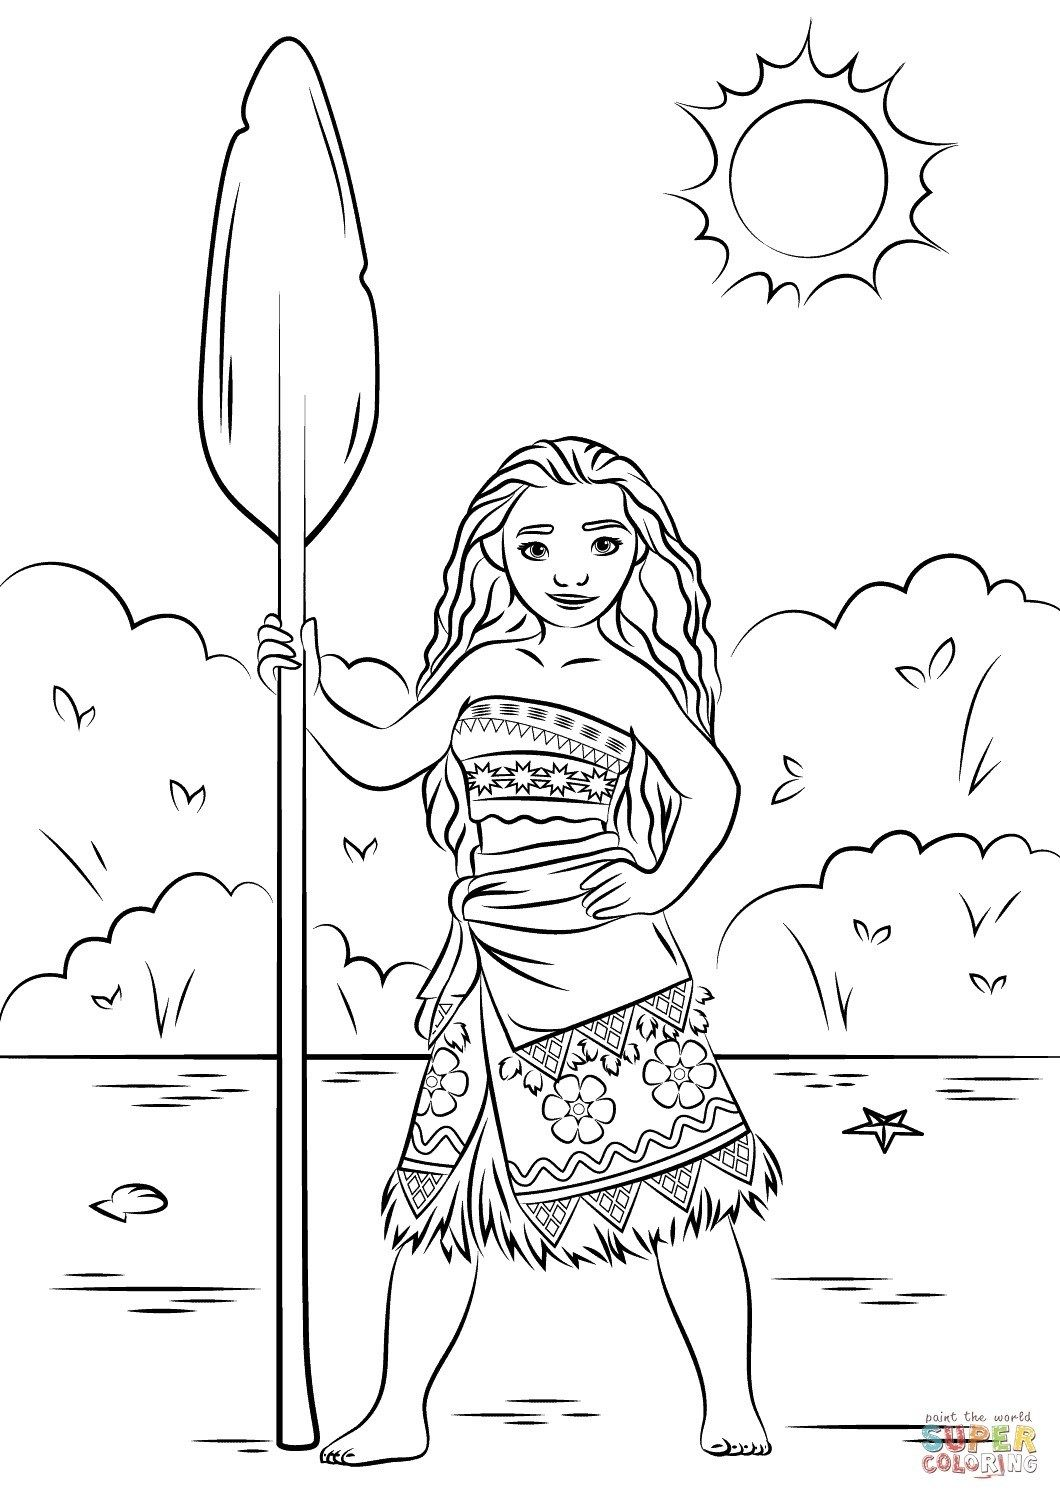 25 Excellent Picture Of Moana Coloring Pages Pdf Davemelillo Com Disney Princess Coloring Pages Moana Coloring Pages Princess Coloring Pages